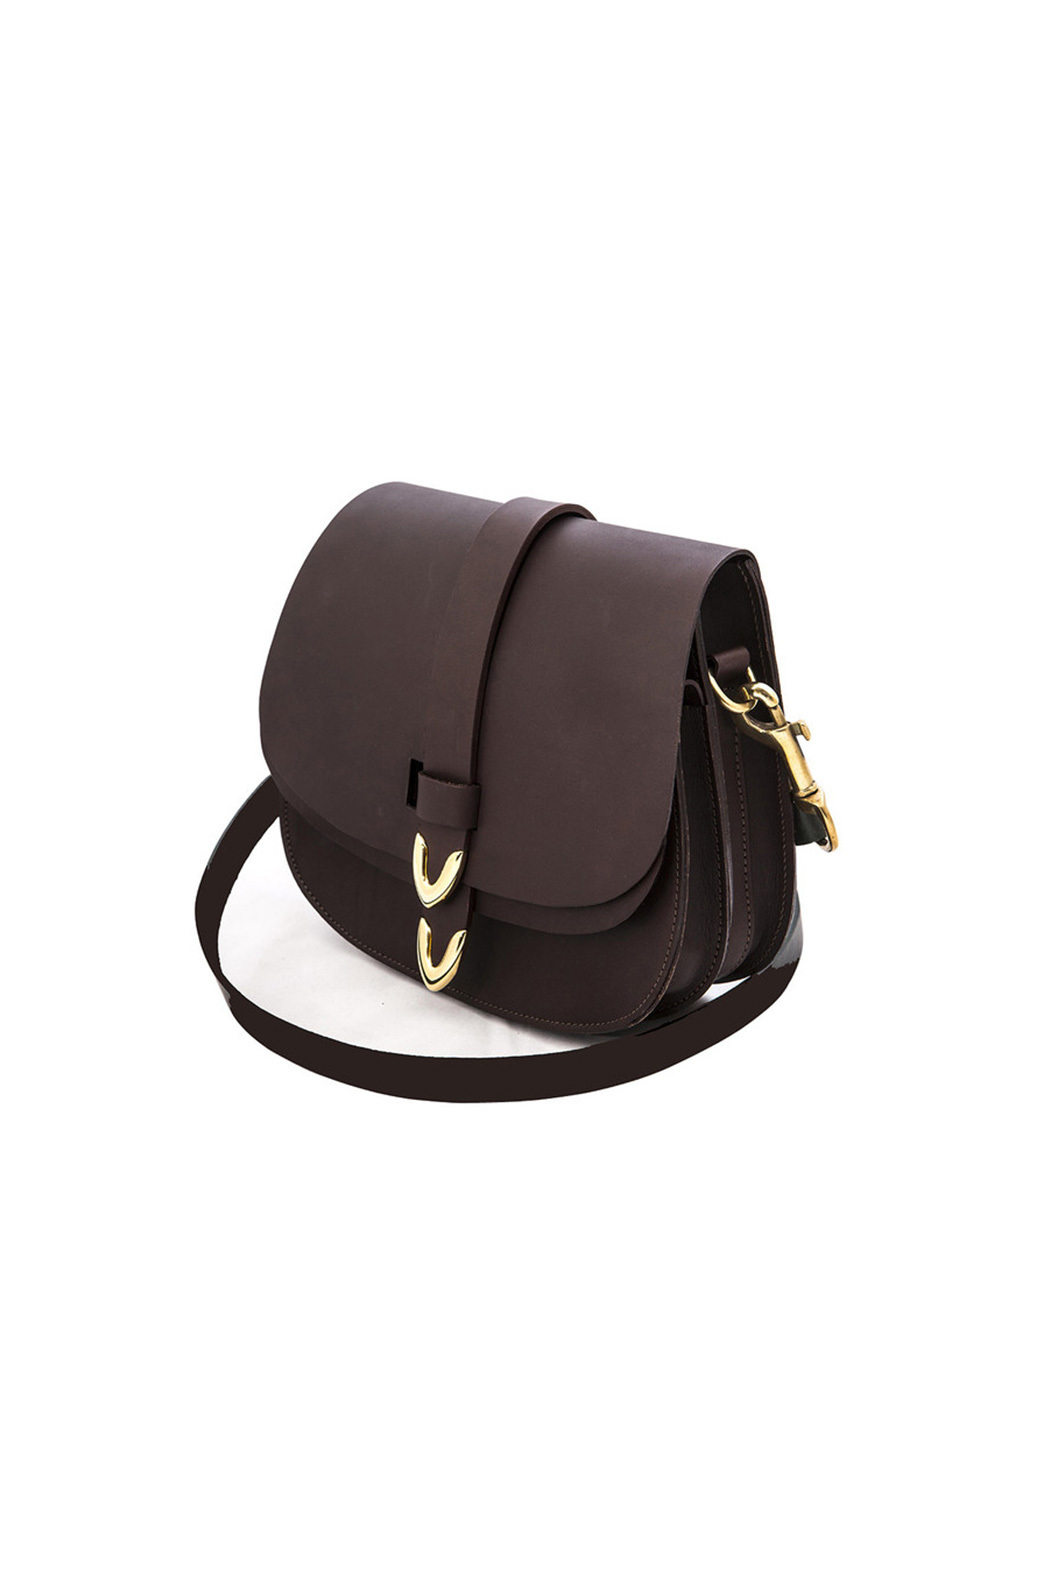 2a3911990b Lost Property of London Arlington Saddlebag from West Village by ...